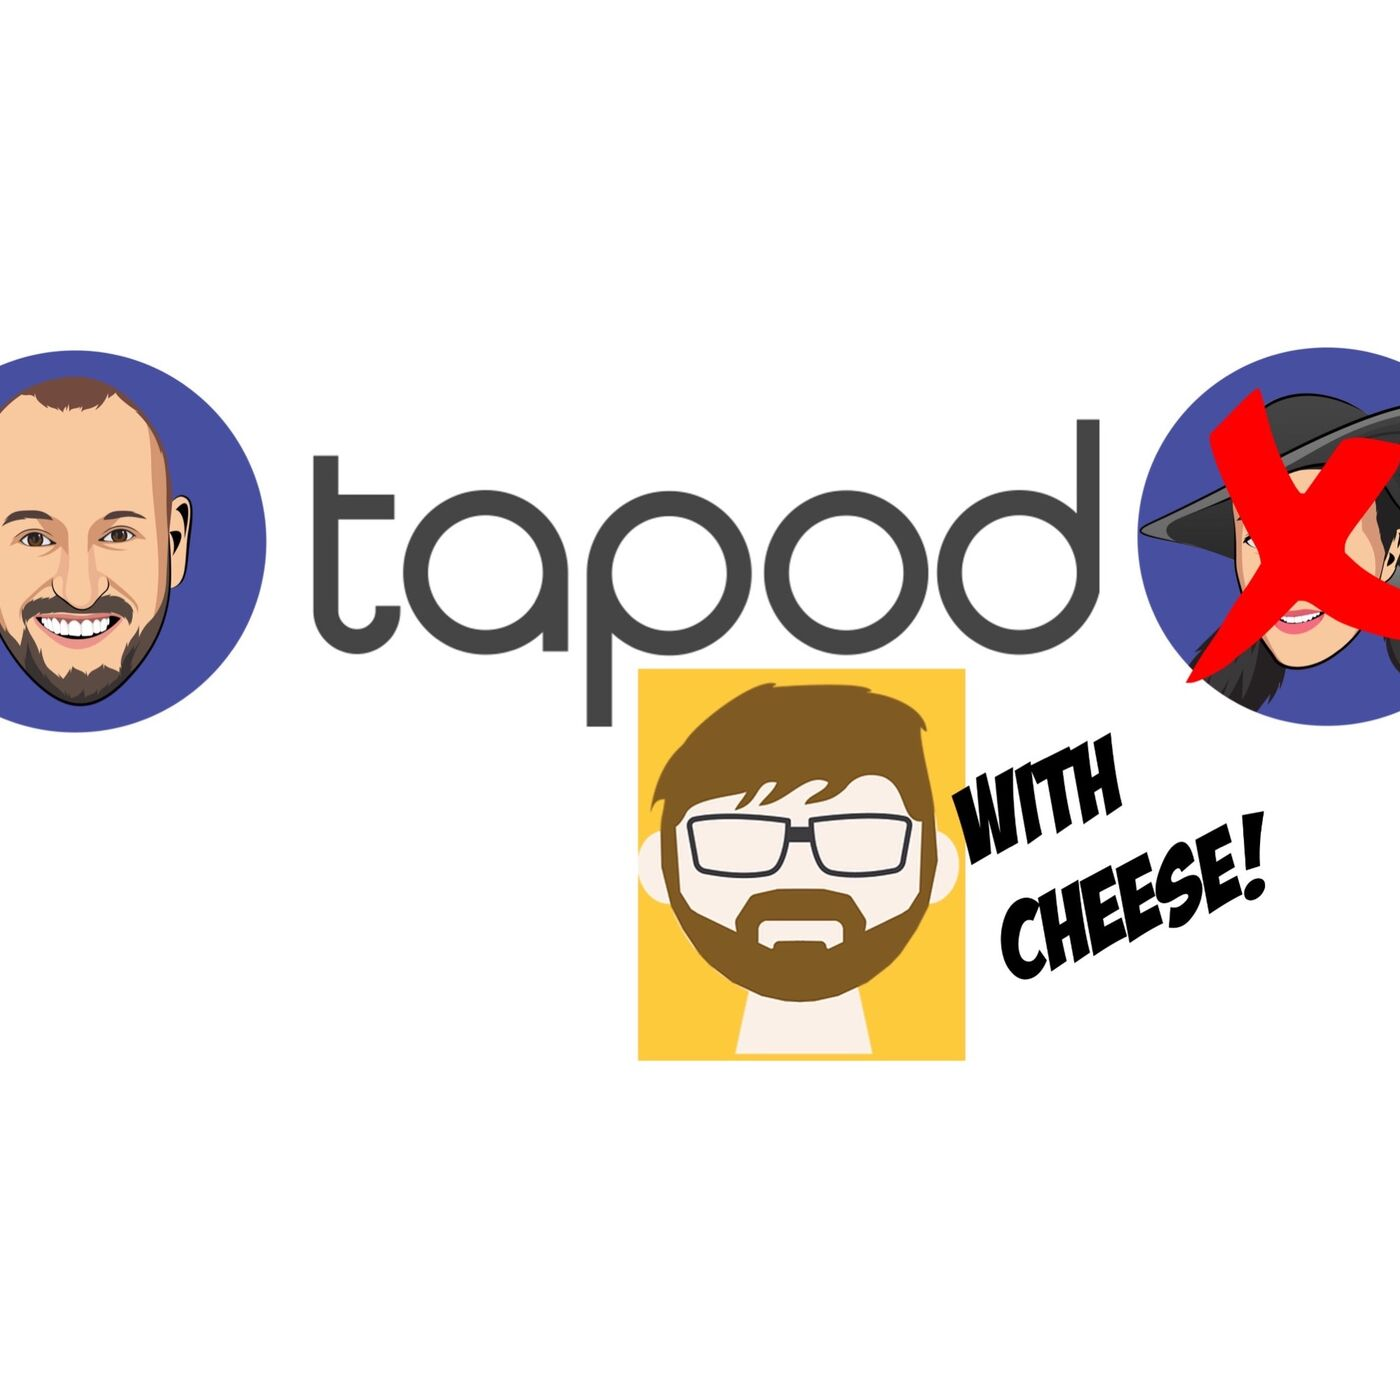 Episode 55 - Joel Cheesman - It's TaPod with Cheese!